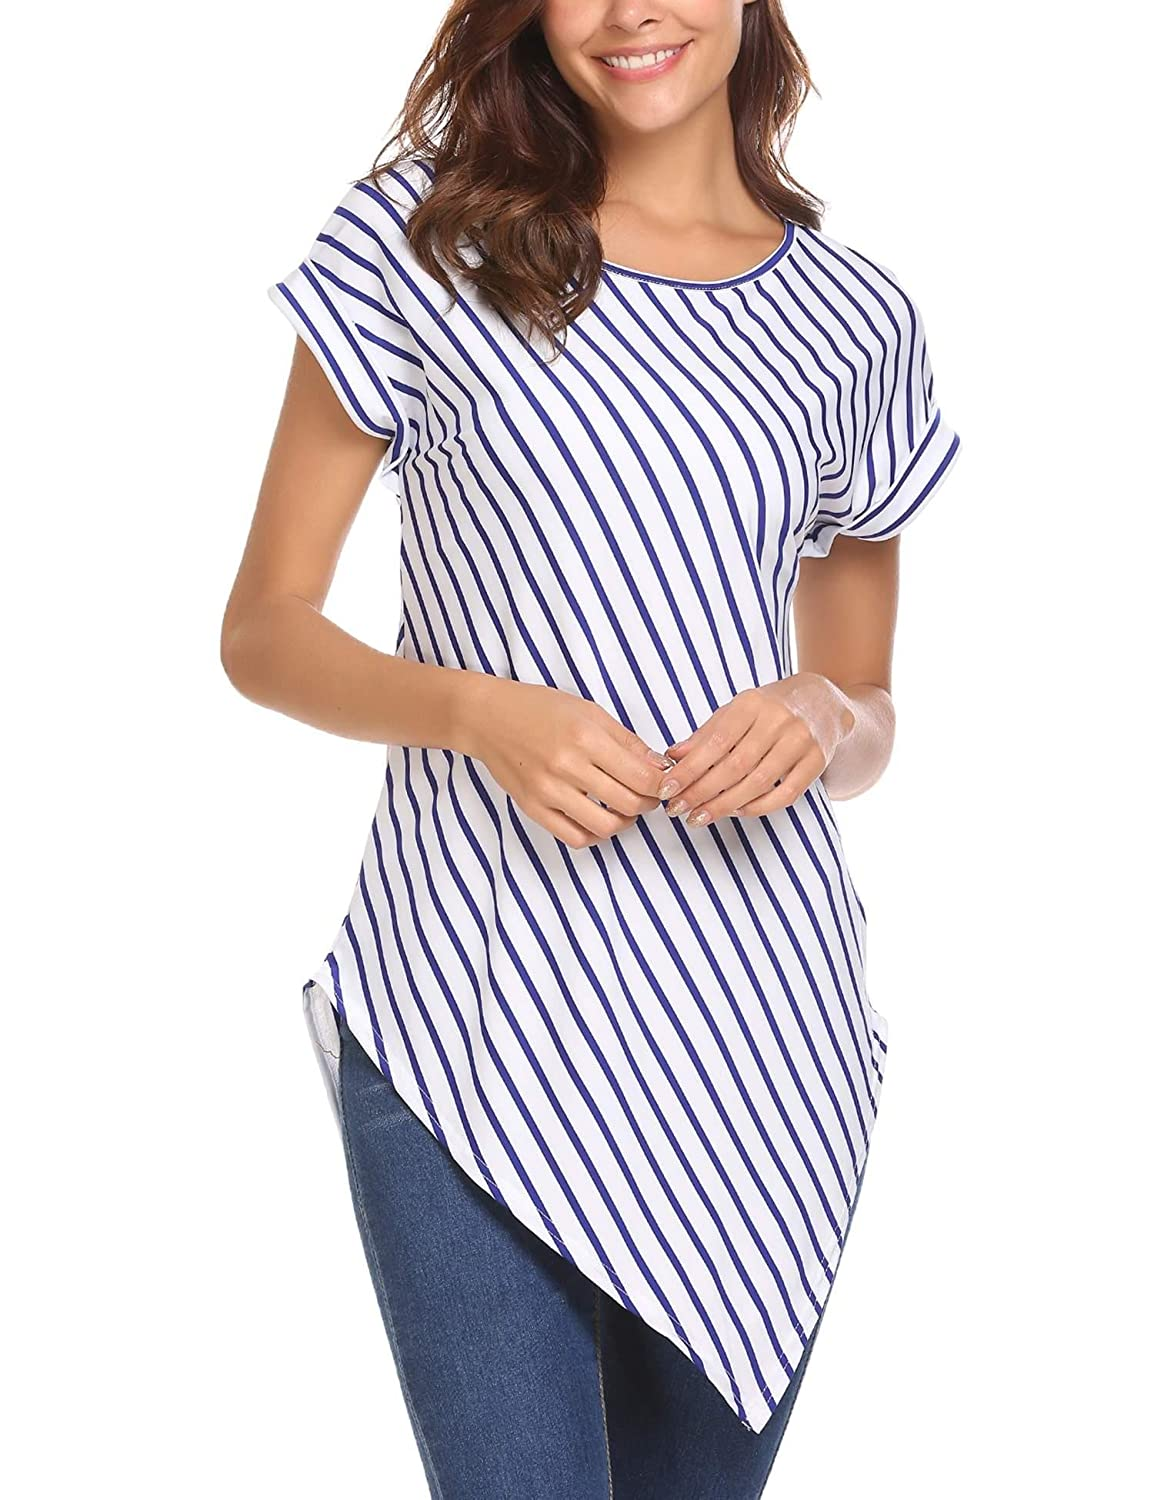 6f159fba093 Sexy off shoulder top for women. Irregular hem design make the shirt  special. Suitable for casual wear. Perfect match skirt, jeans or shorts